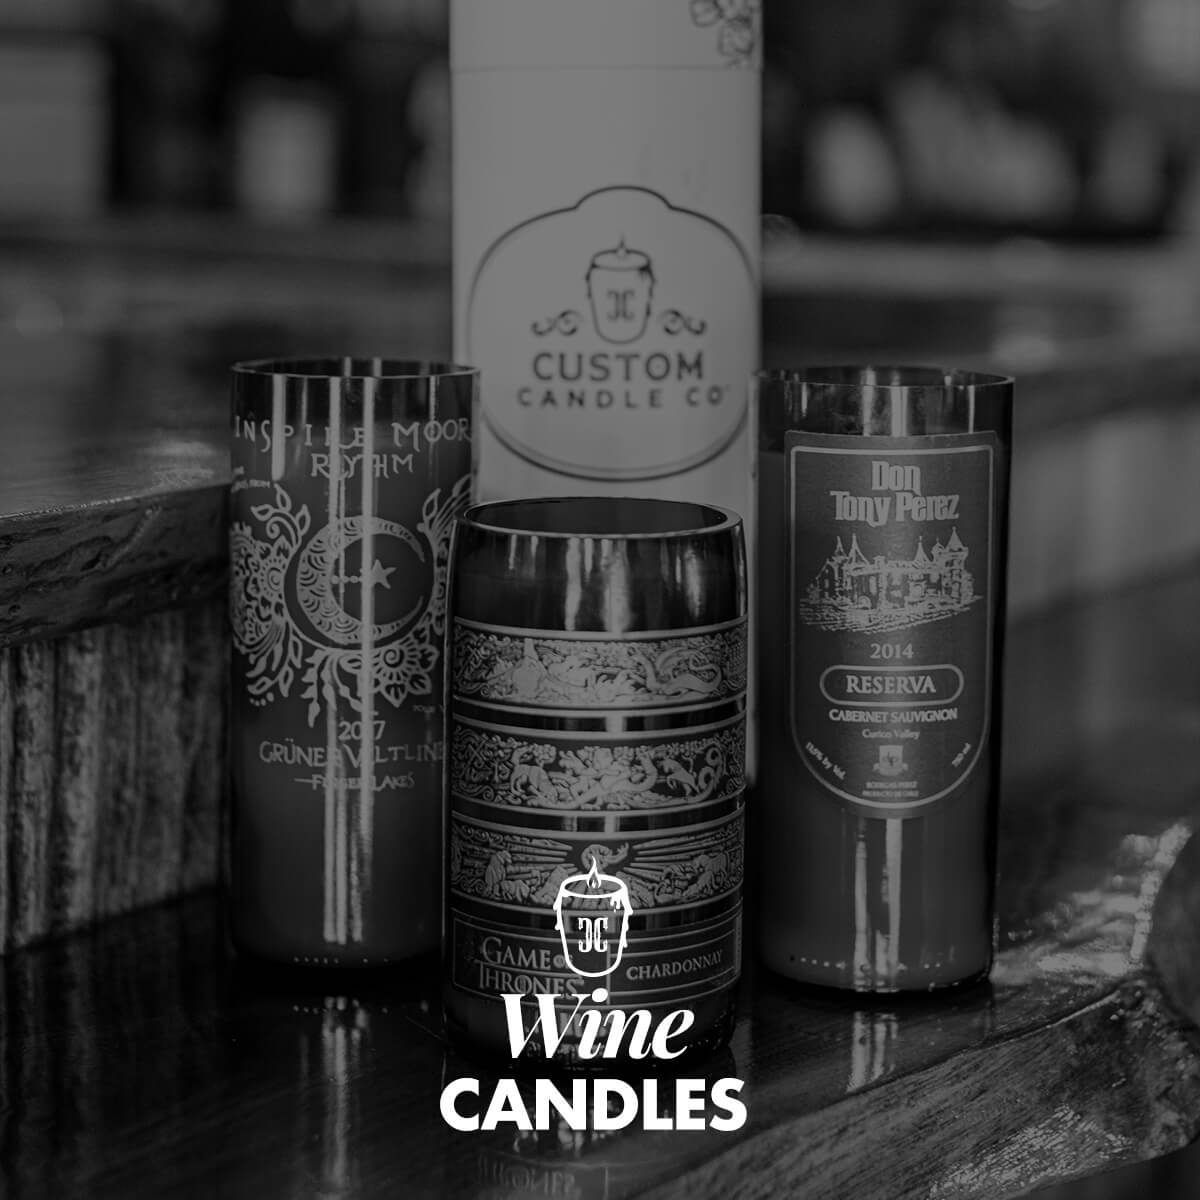 wine-candles-customcandleco-1